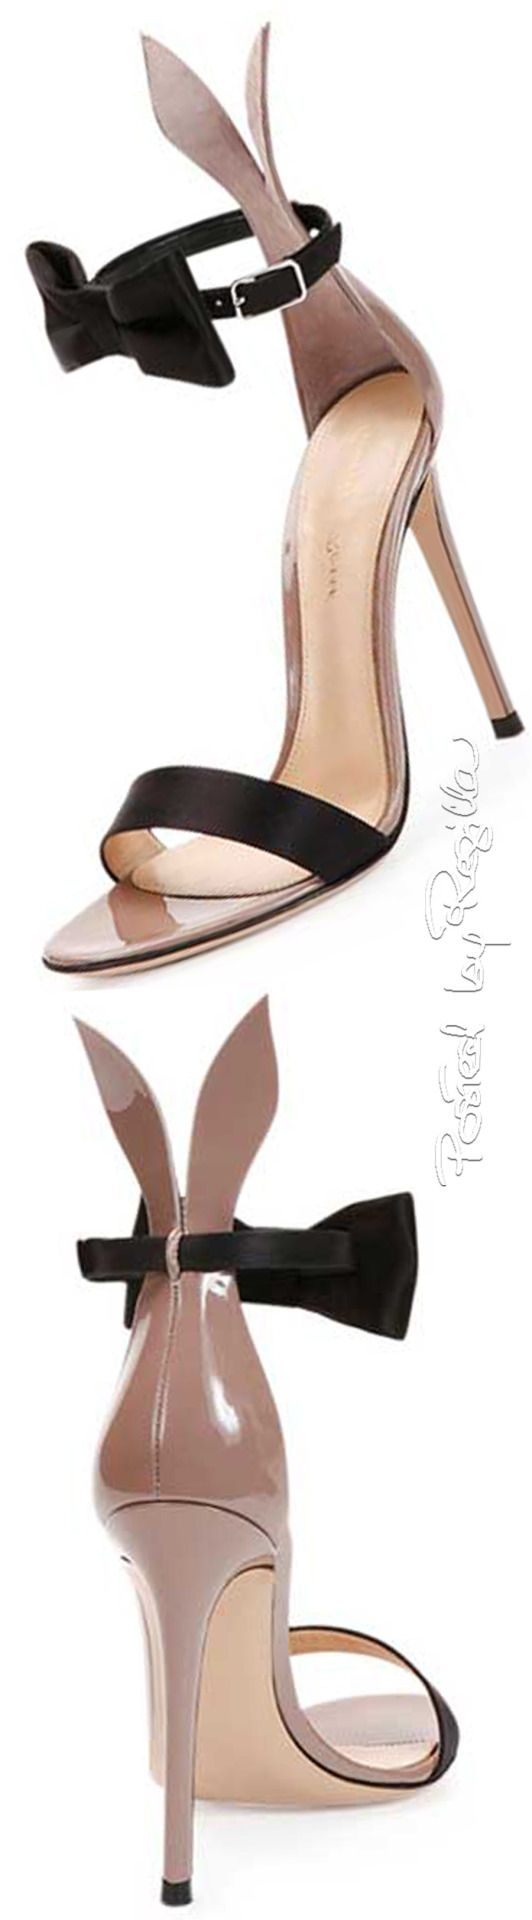 Gianvito Rossi ~ Bow Tie Ankle-Strap Bunny Sandals, Black/Rose 2015